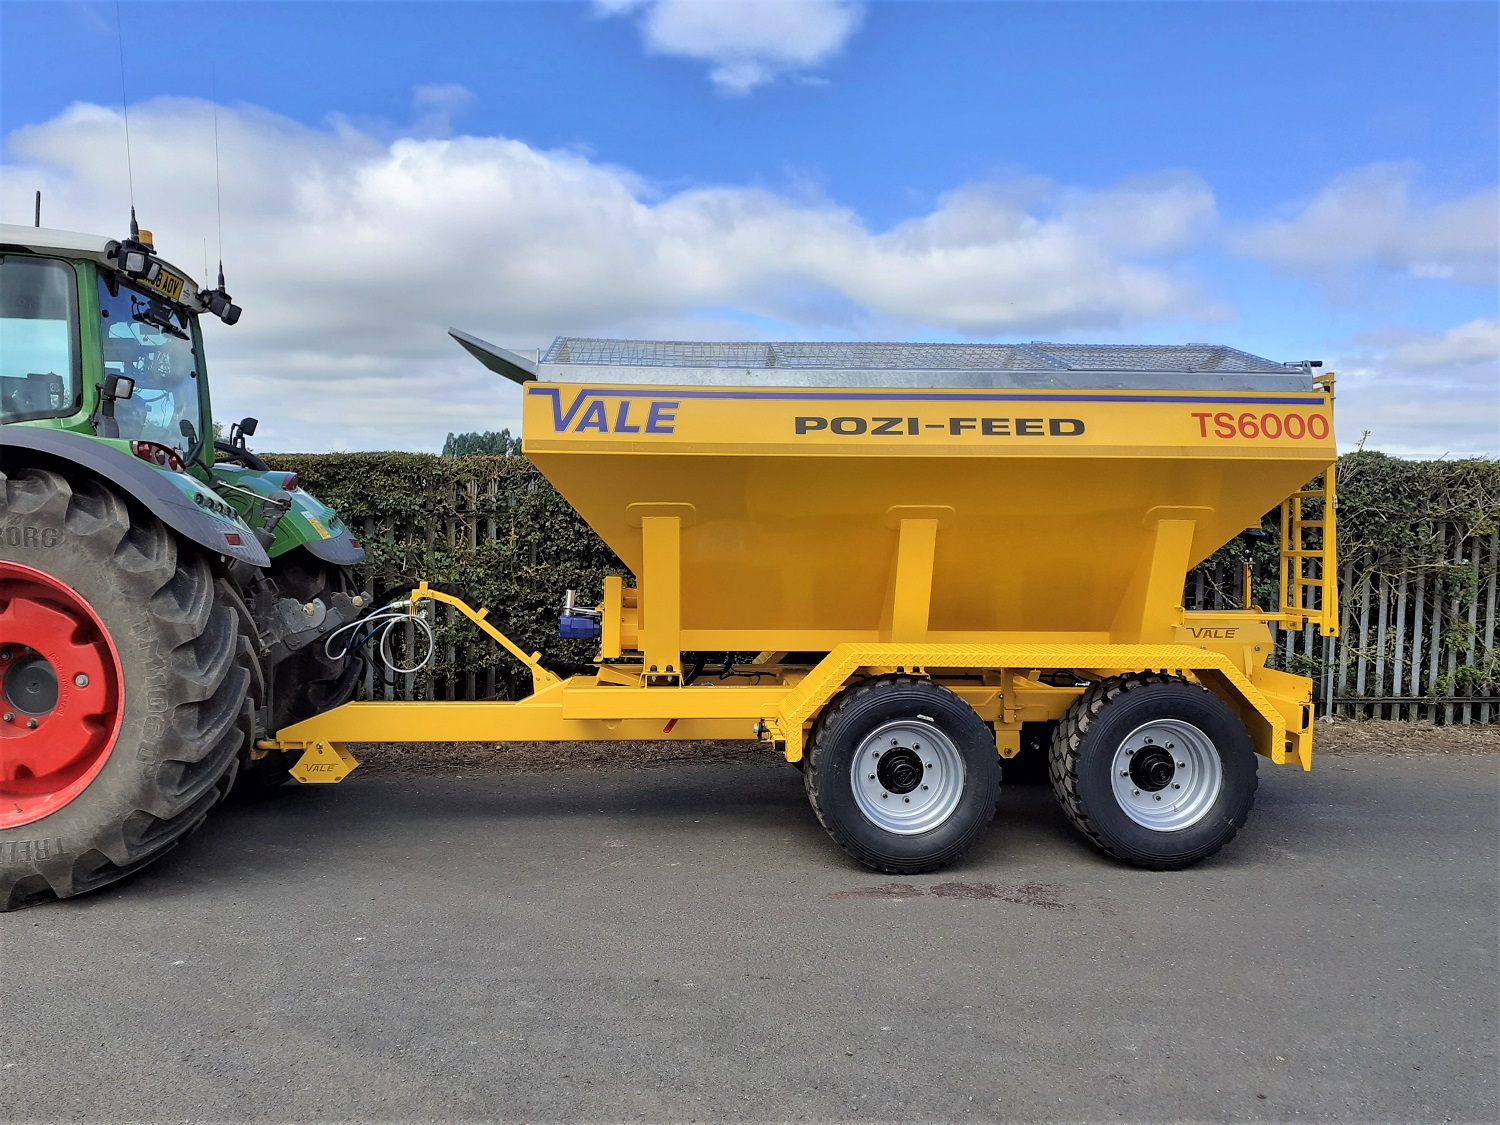 Tractor Towed Salt Spreader (Gritter) VALE TS6000 - Heavy duty tandem axle chassis fitted with leaf spring suspension, 90mm commercial square axles fitted with hydraulically operated S-cam brakes